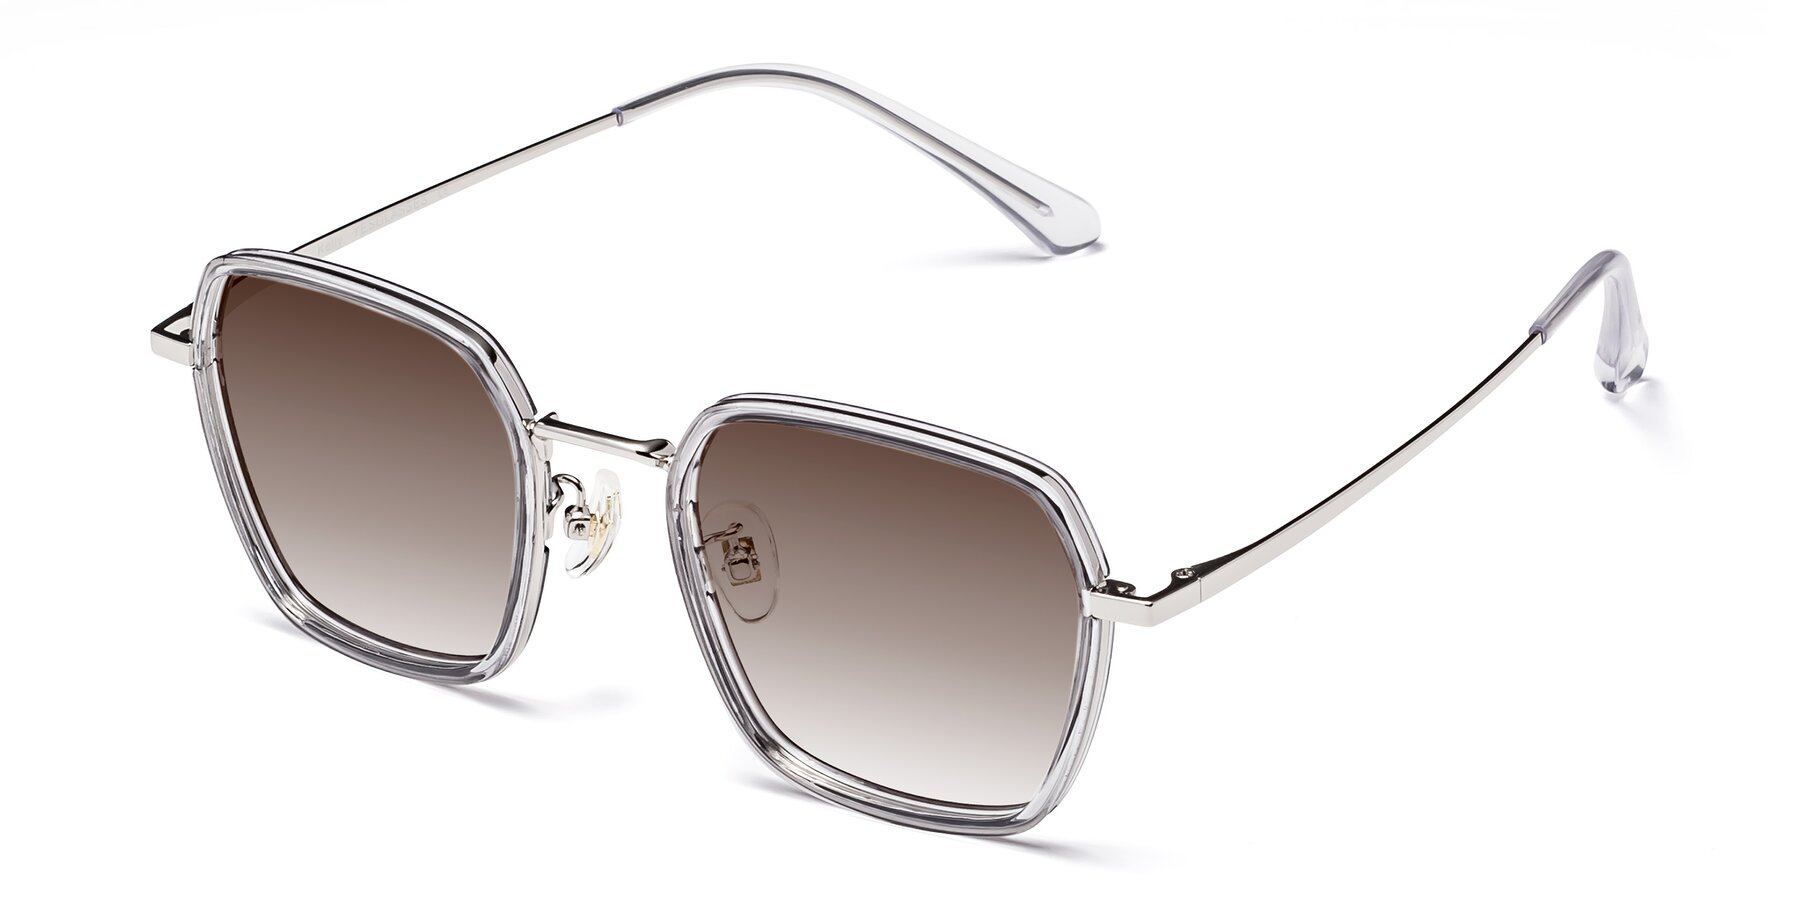 Angle of Kelly in Light Gray-Silver with Brown Gradient Lenses